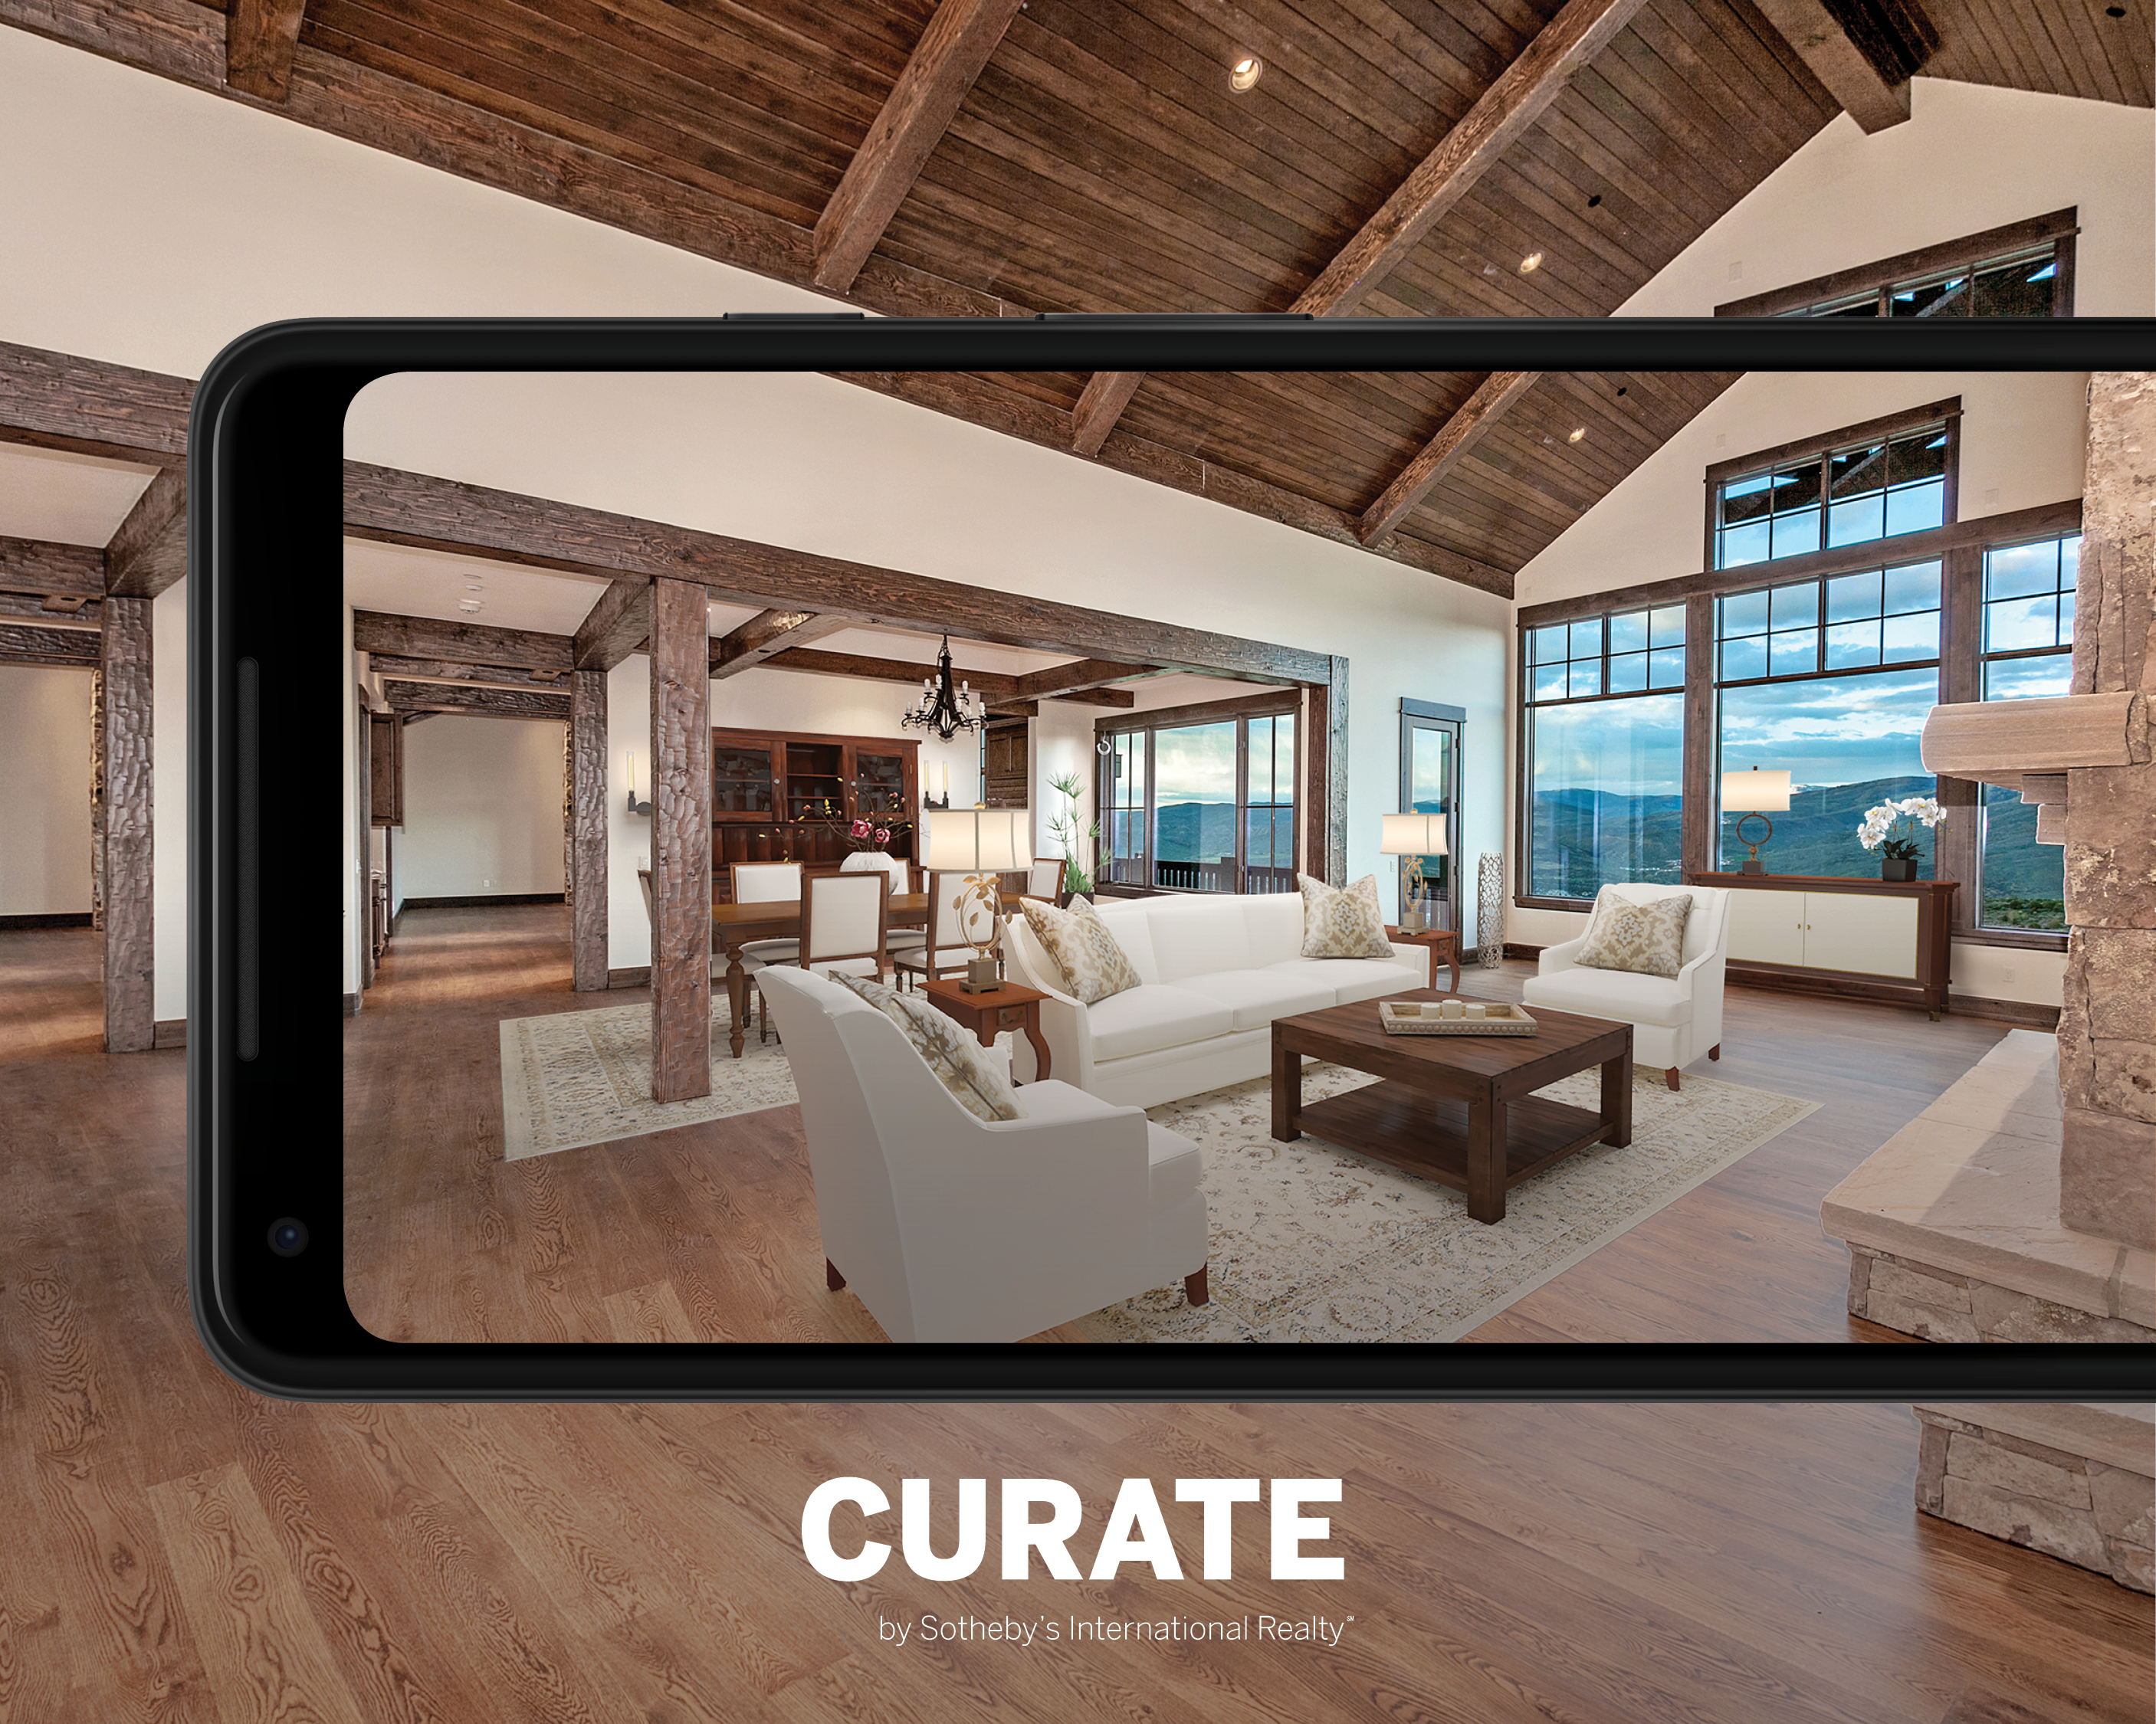 SOTHEBY'S INTERNATIONAL REALTY IS FIRST IN AUGMENTED REALITY VIRTUAL STAGING